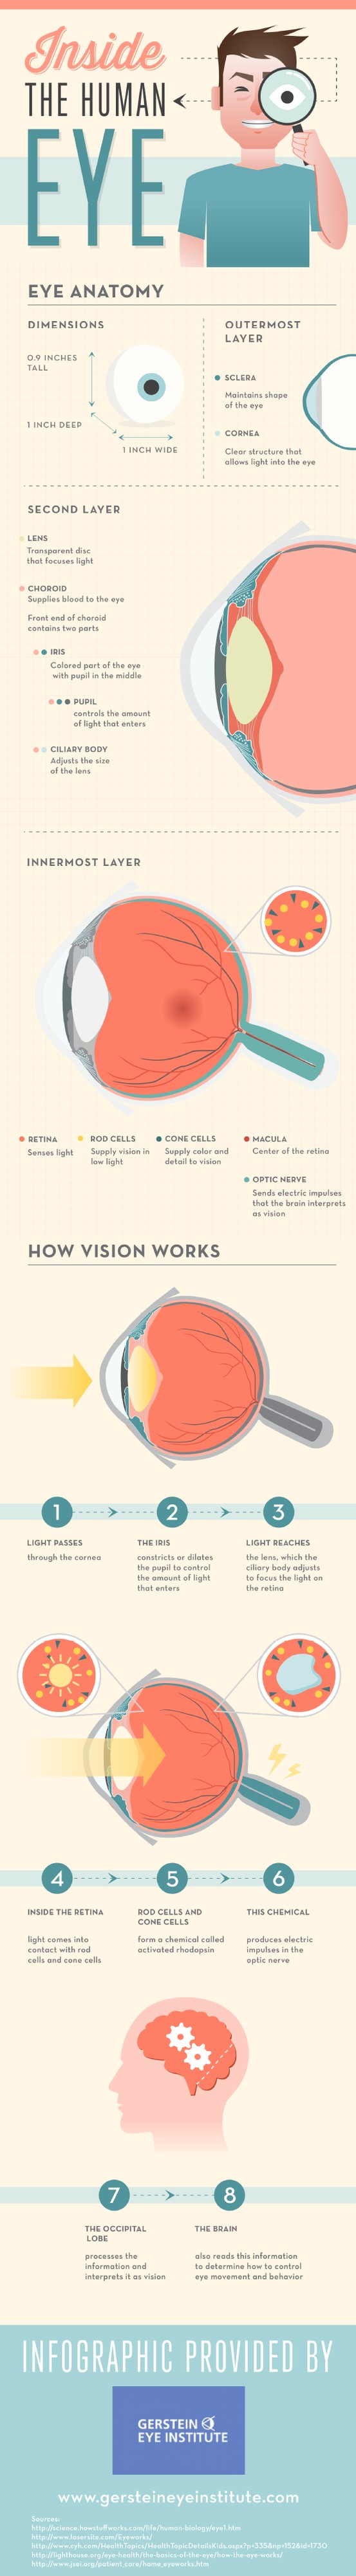 The choroid is the part of the eye that contains the iris and the ...